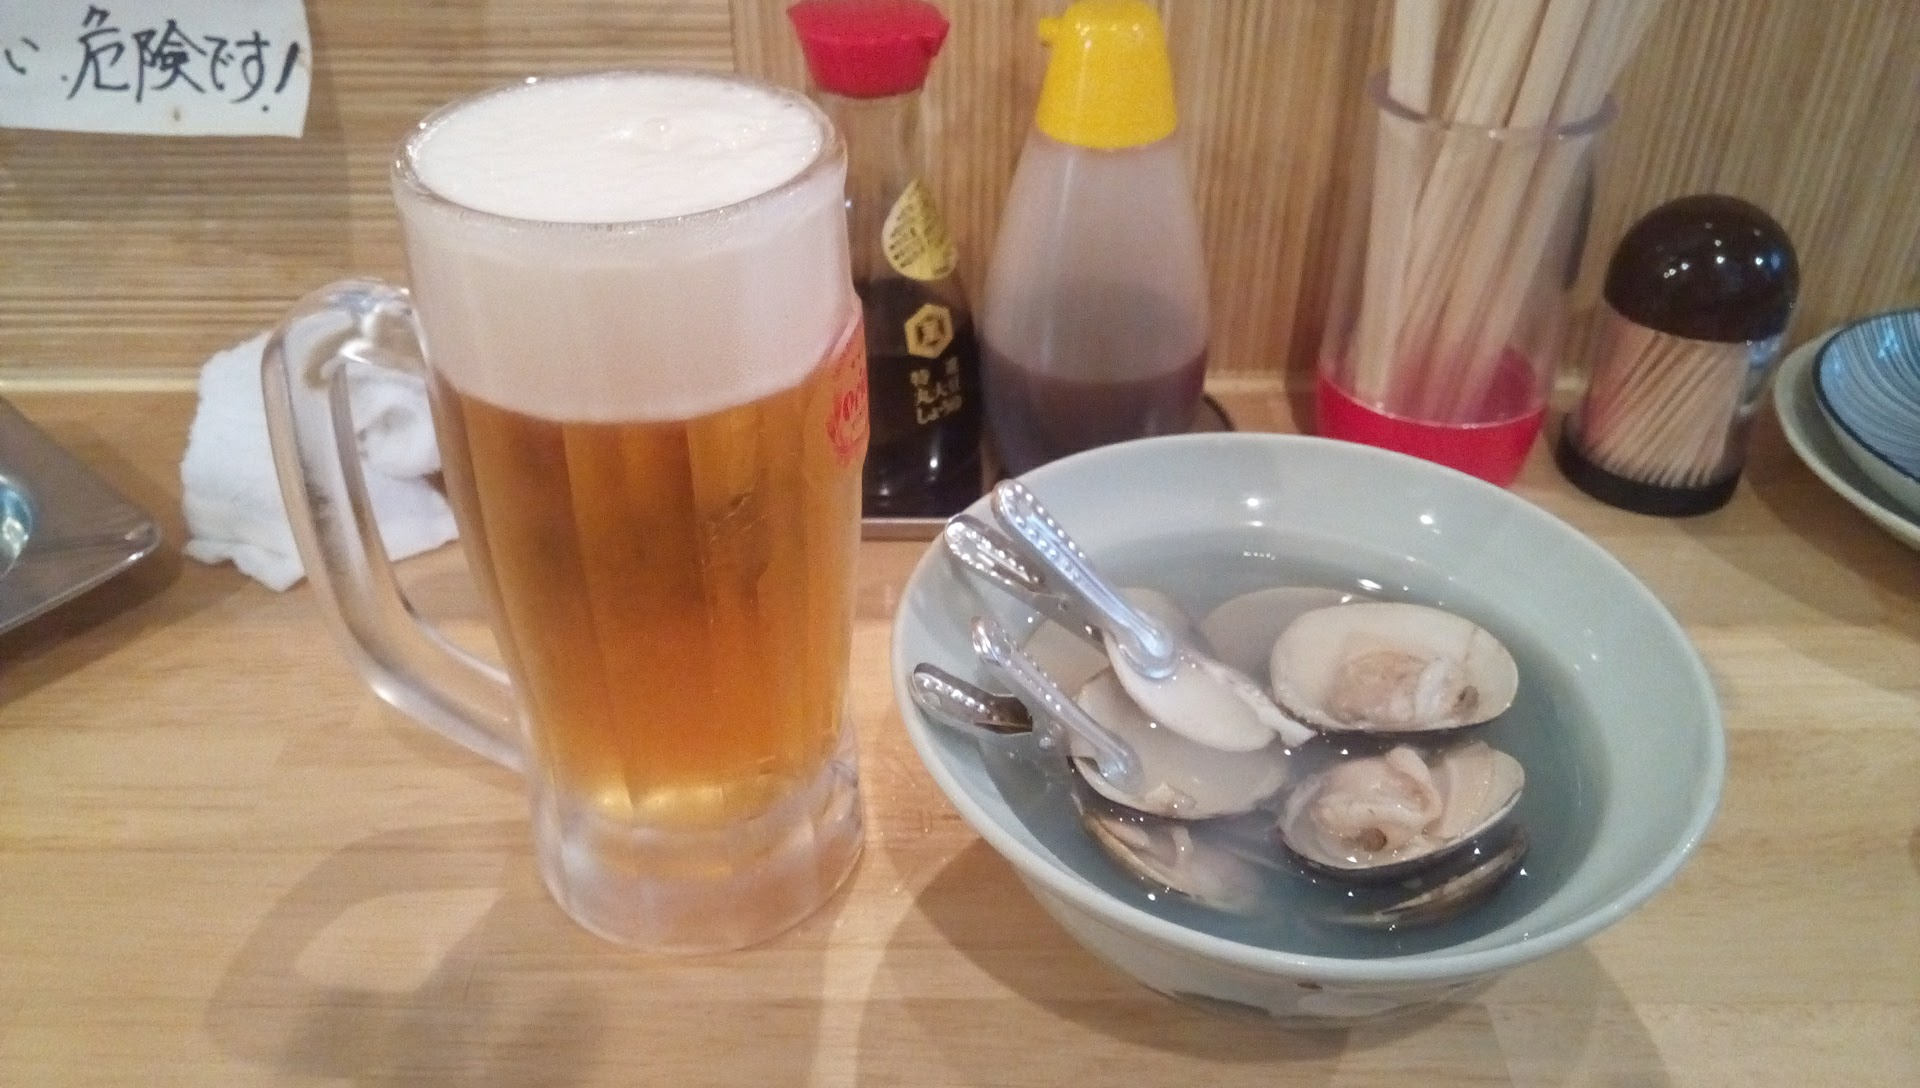 clams and beer